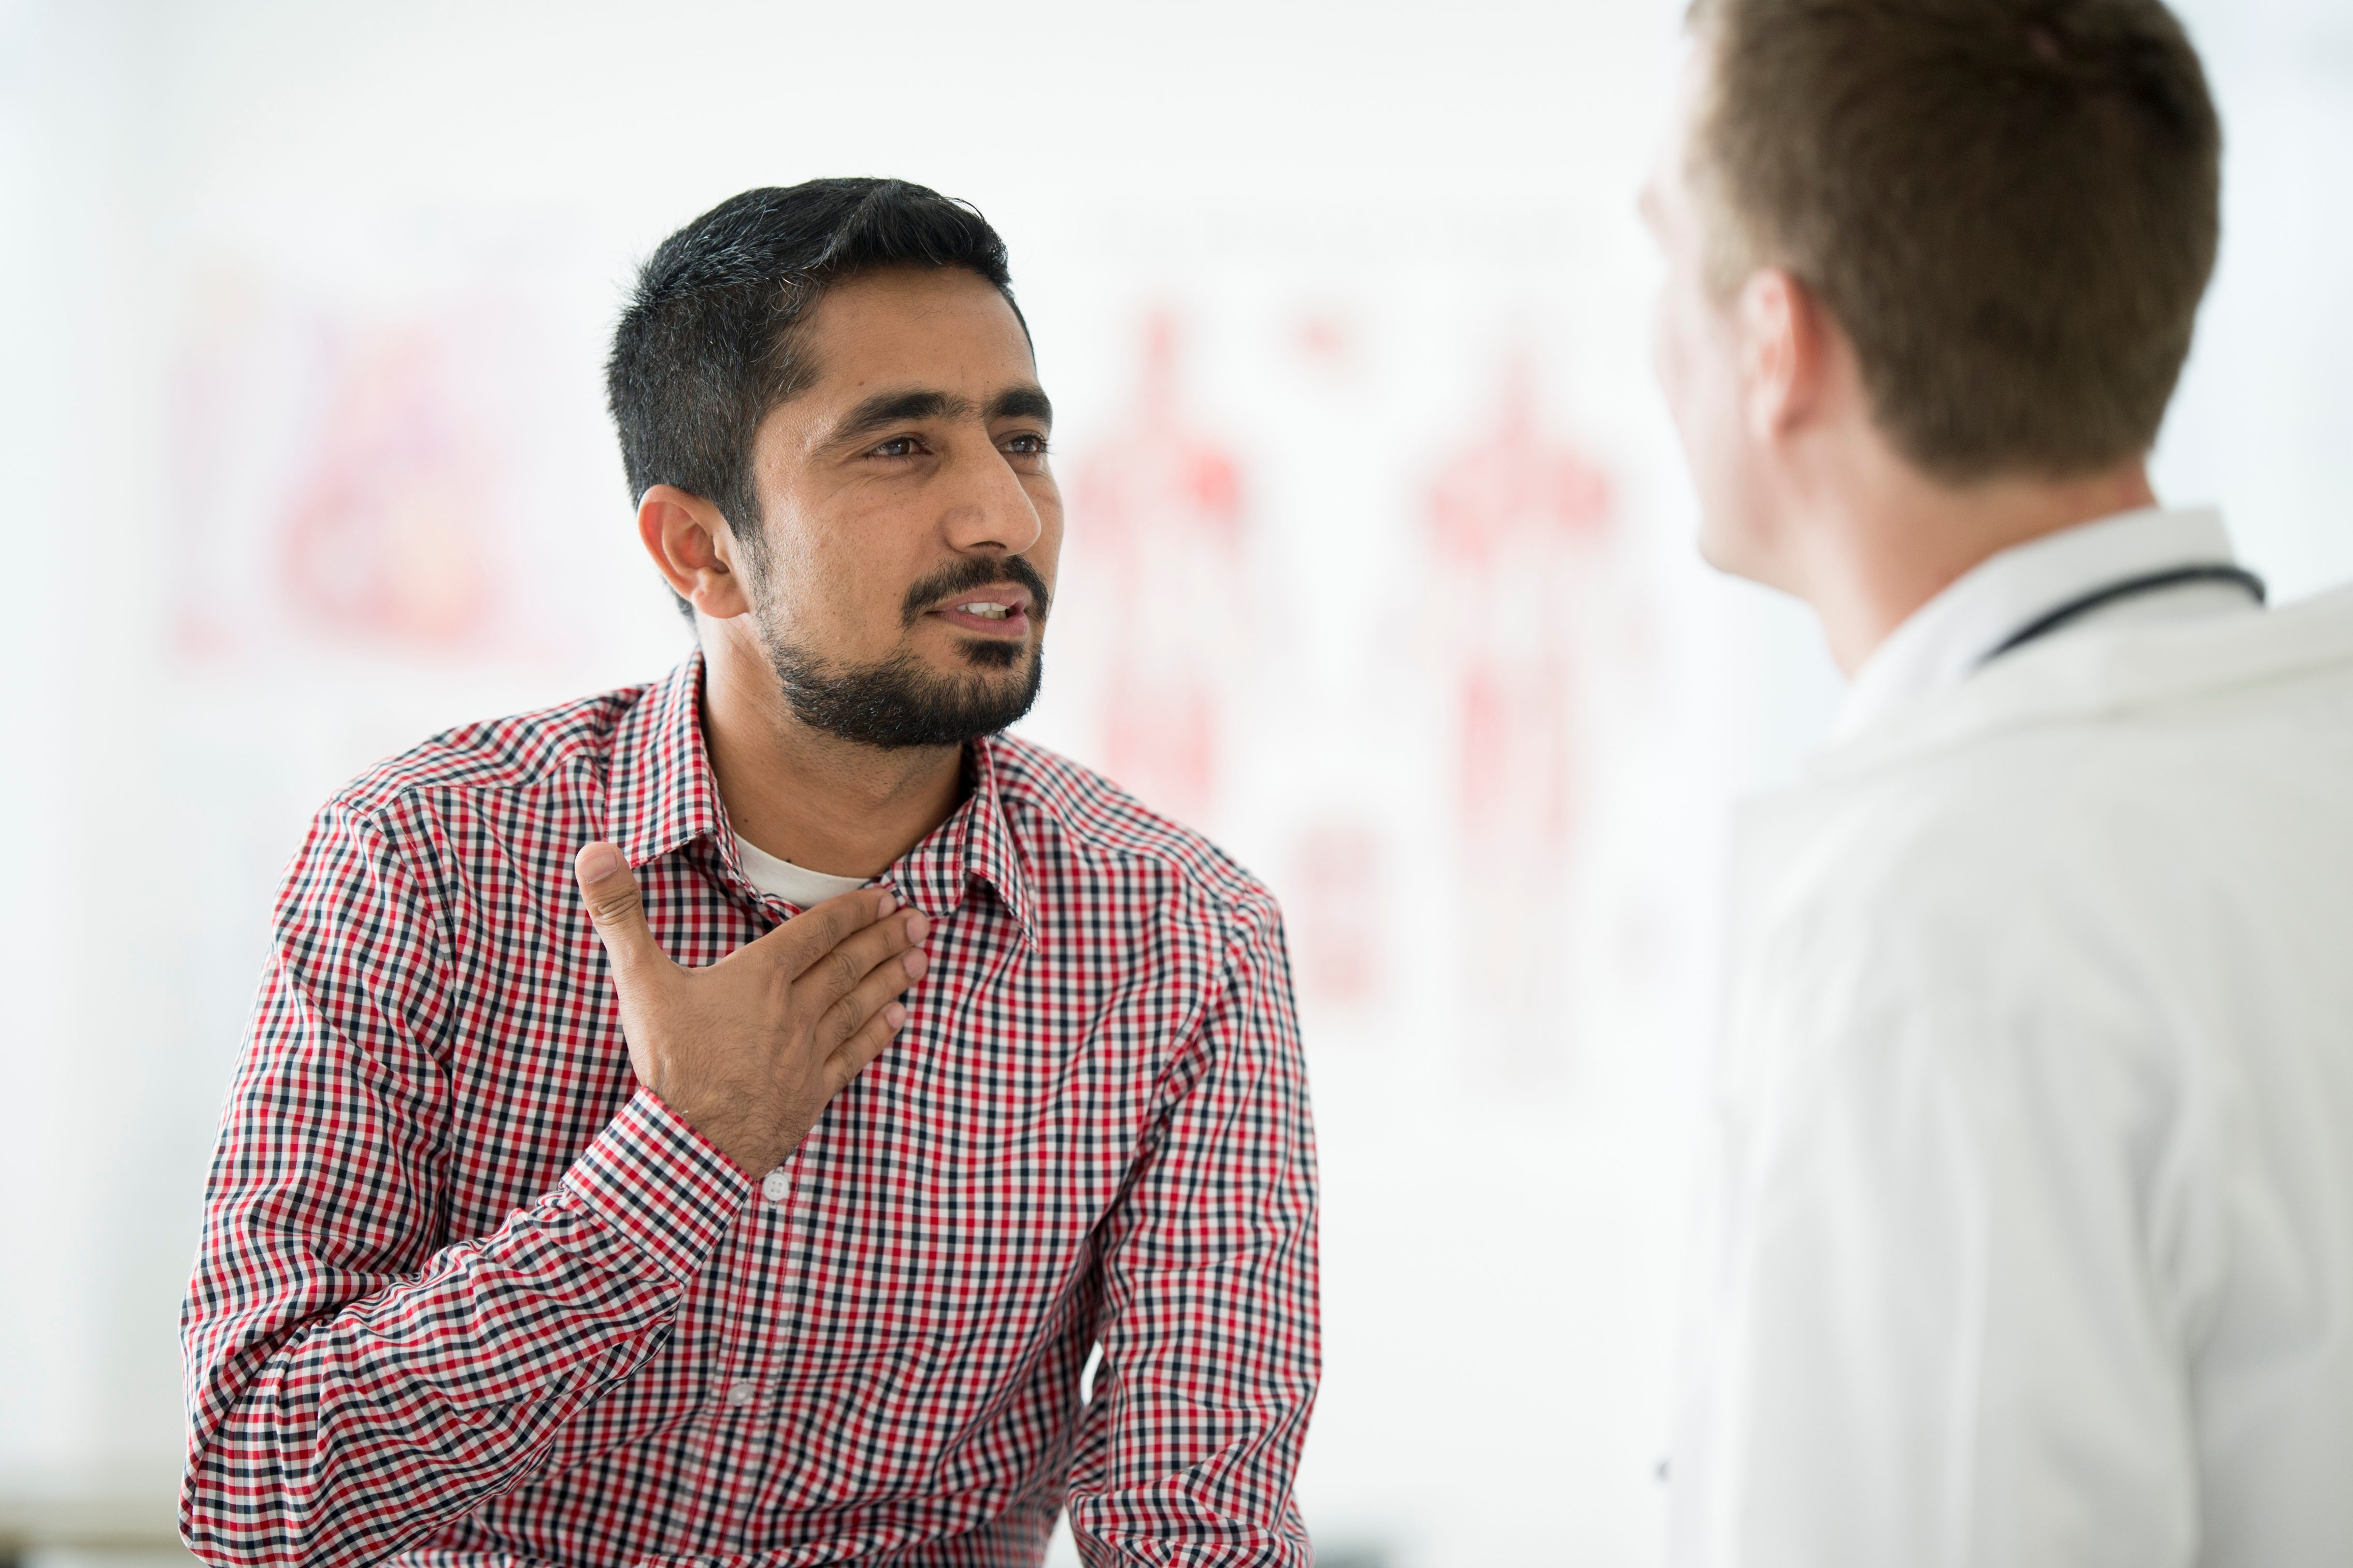 Male patient pointing toward neck while speaking to physician